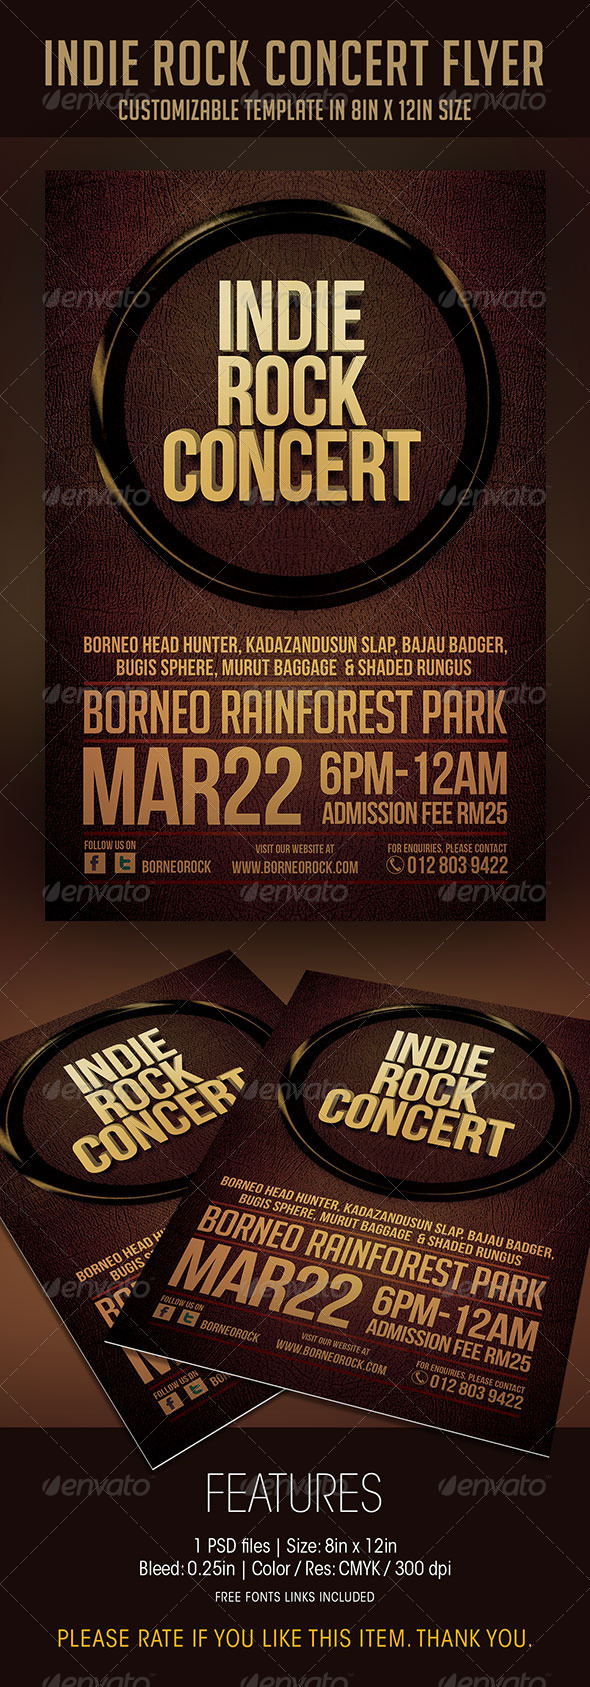 Indie Rock Concert Flyer - Concerts Events